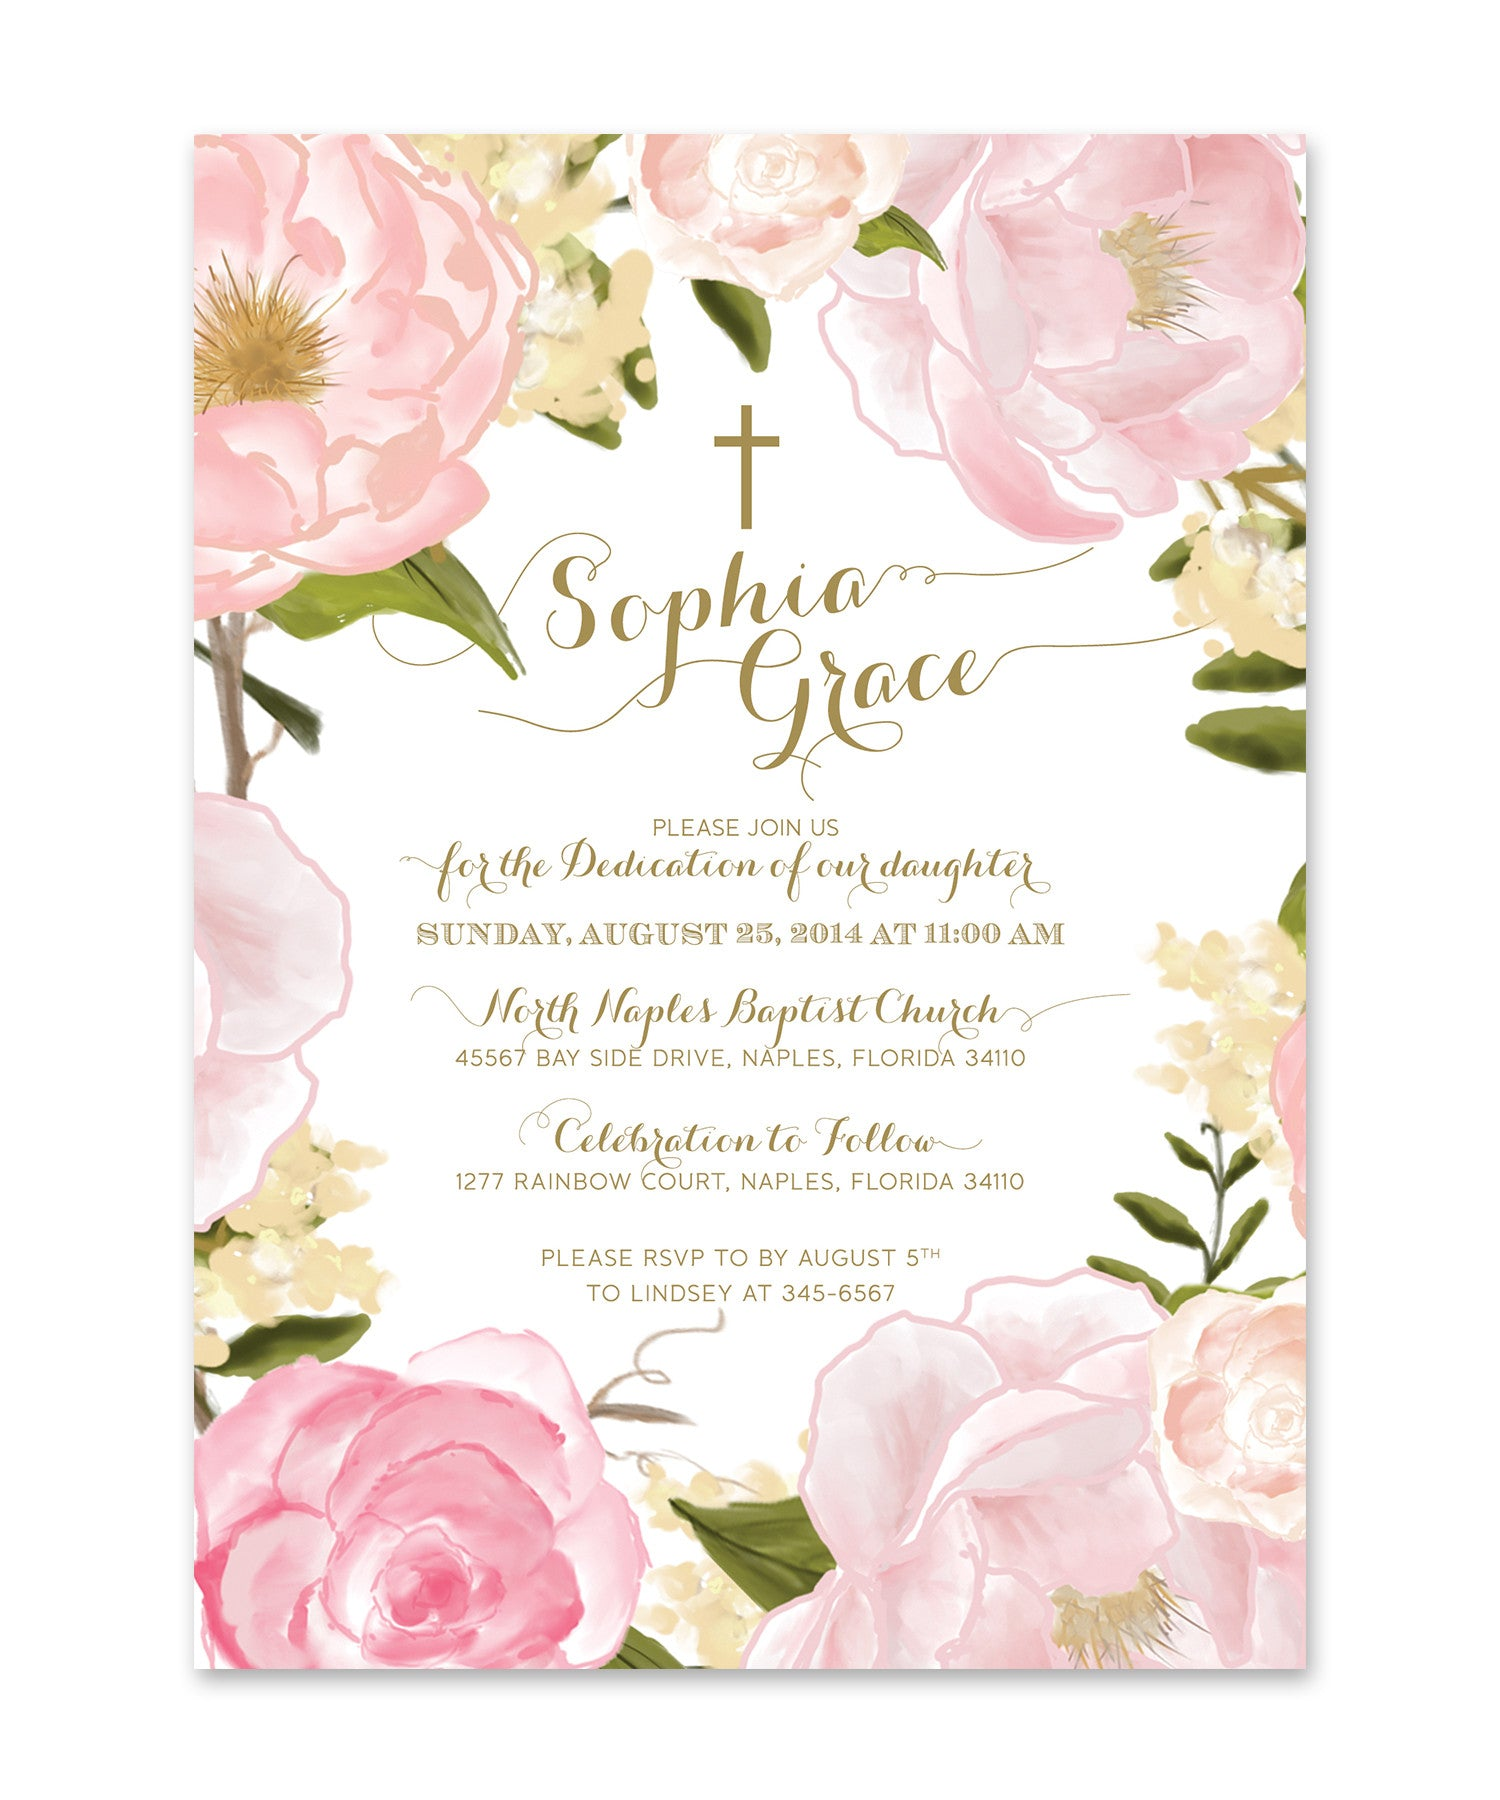 grace dedication invitation for girls pink roses peonies gold